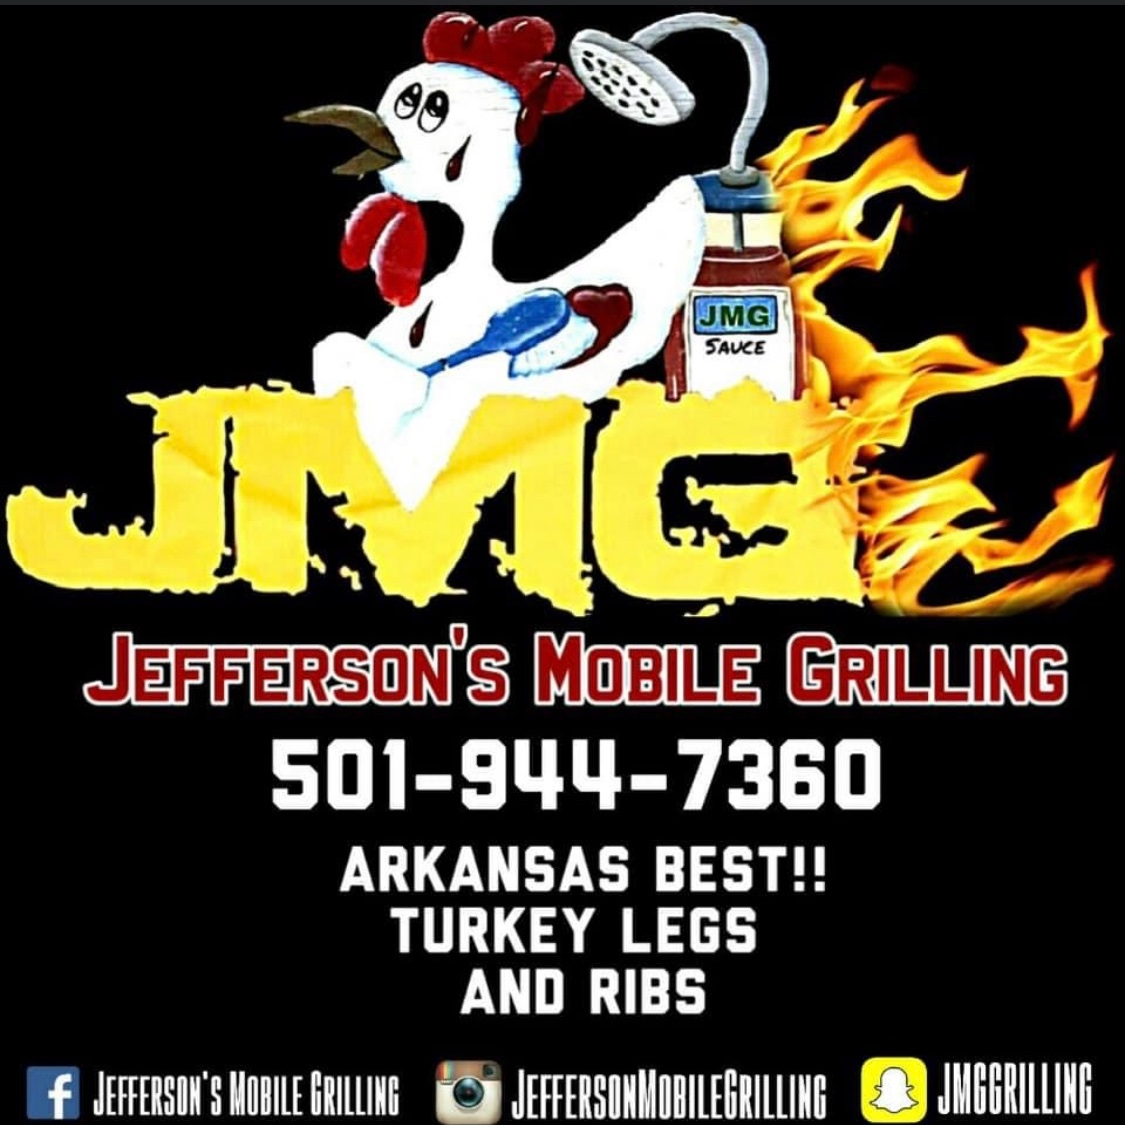 Jefferson's Mobile Grilling food truck profile image